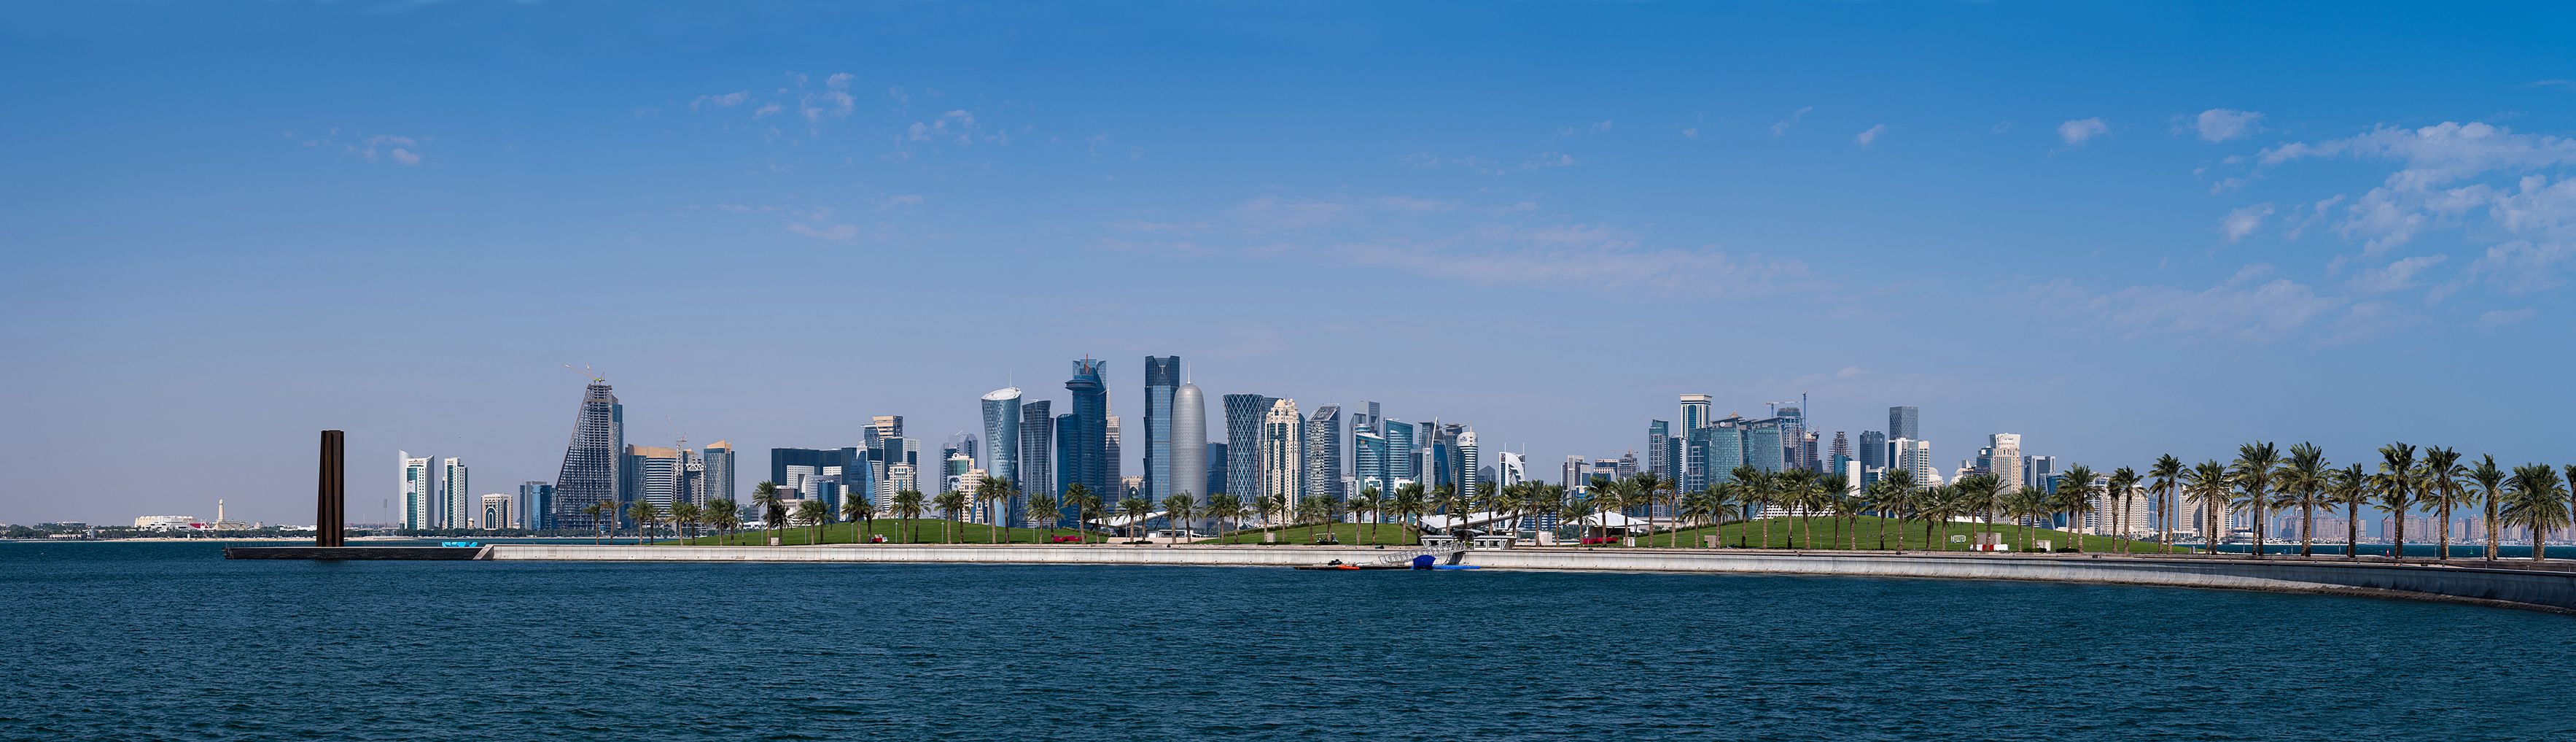 Qatar Skyline Panorama